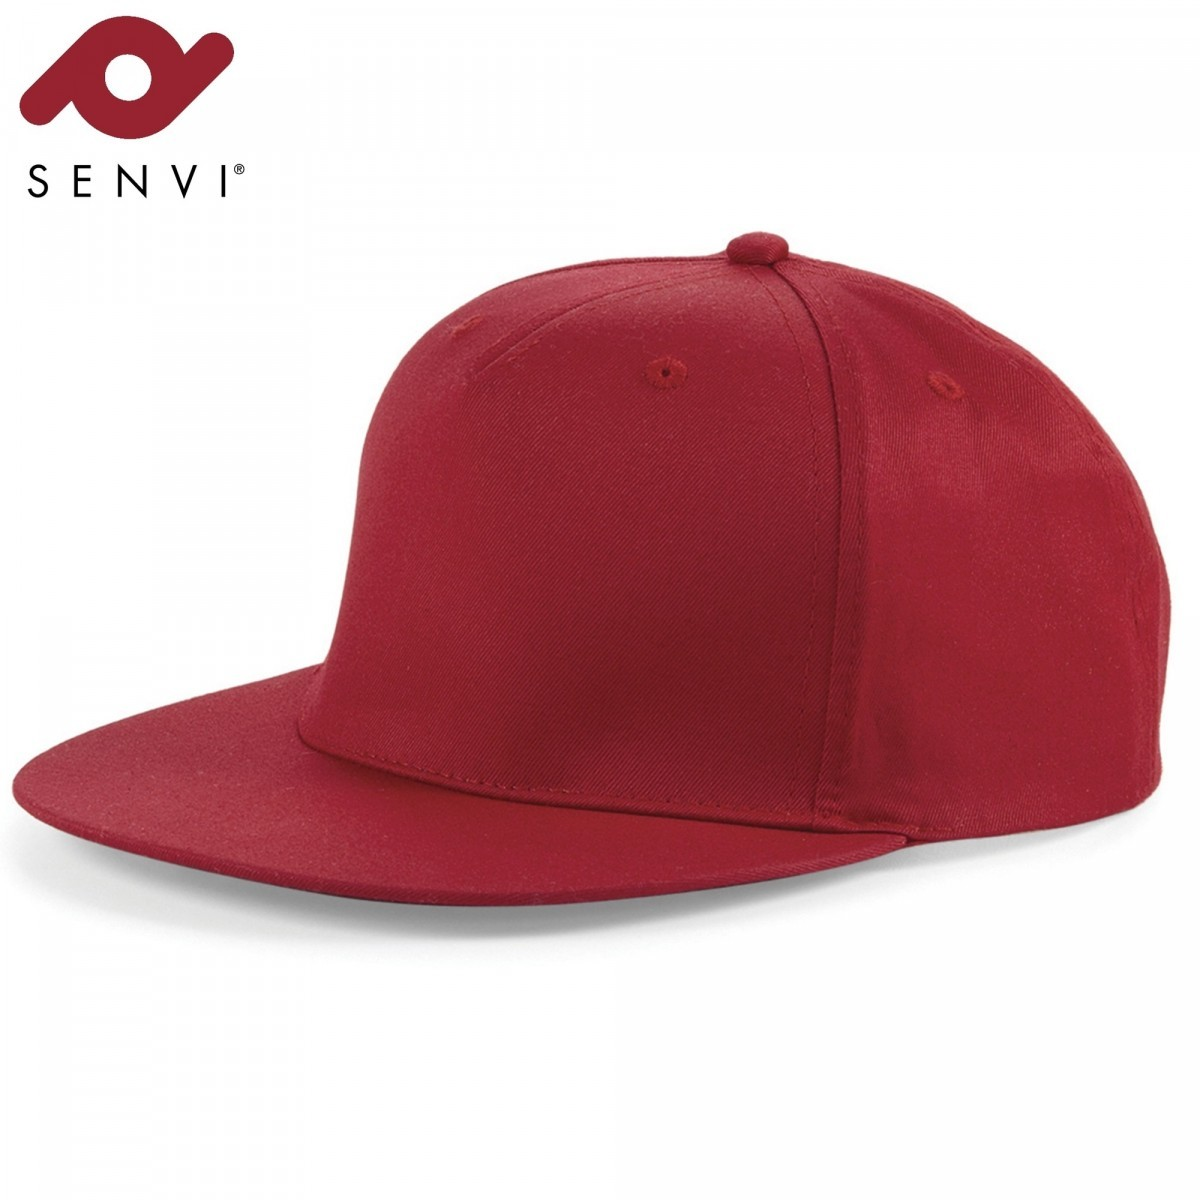 Senvi Snapback Rapper Cap Rood (One size fits all)